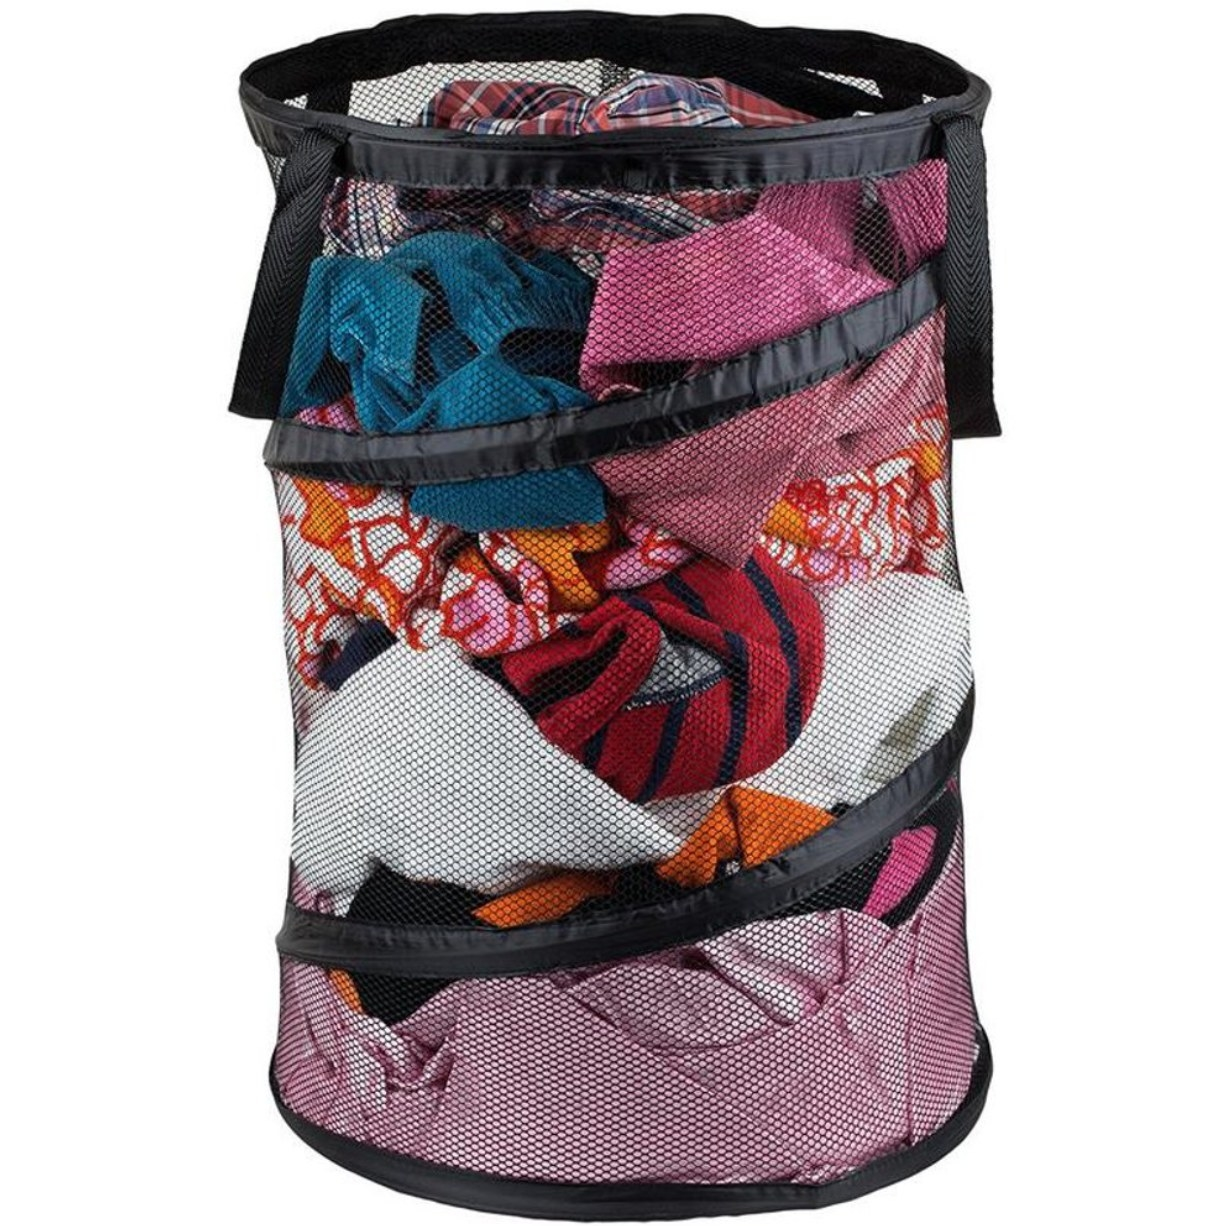 The laundry hamper holding dirty clothes